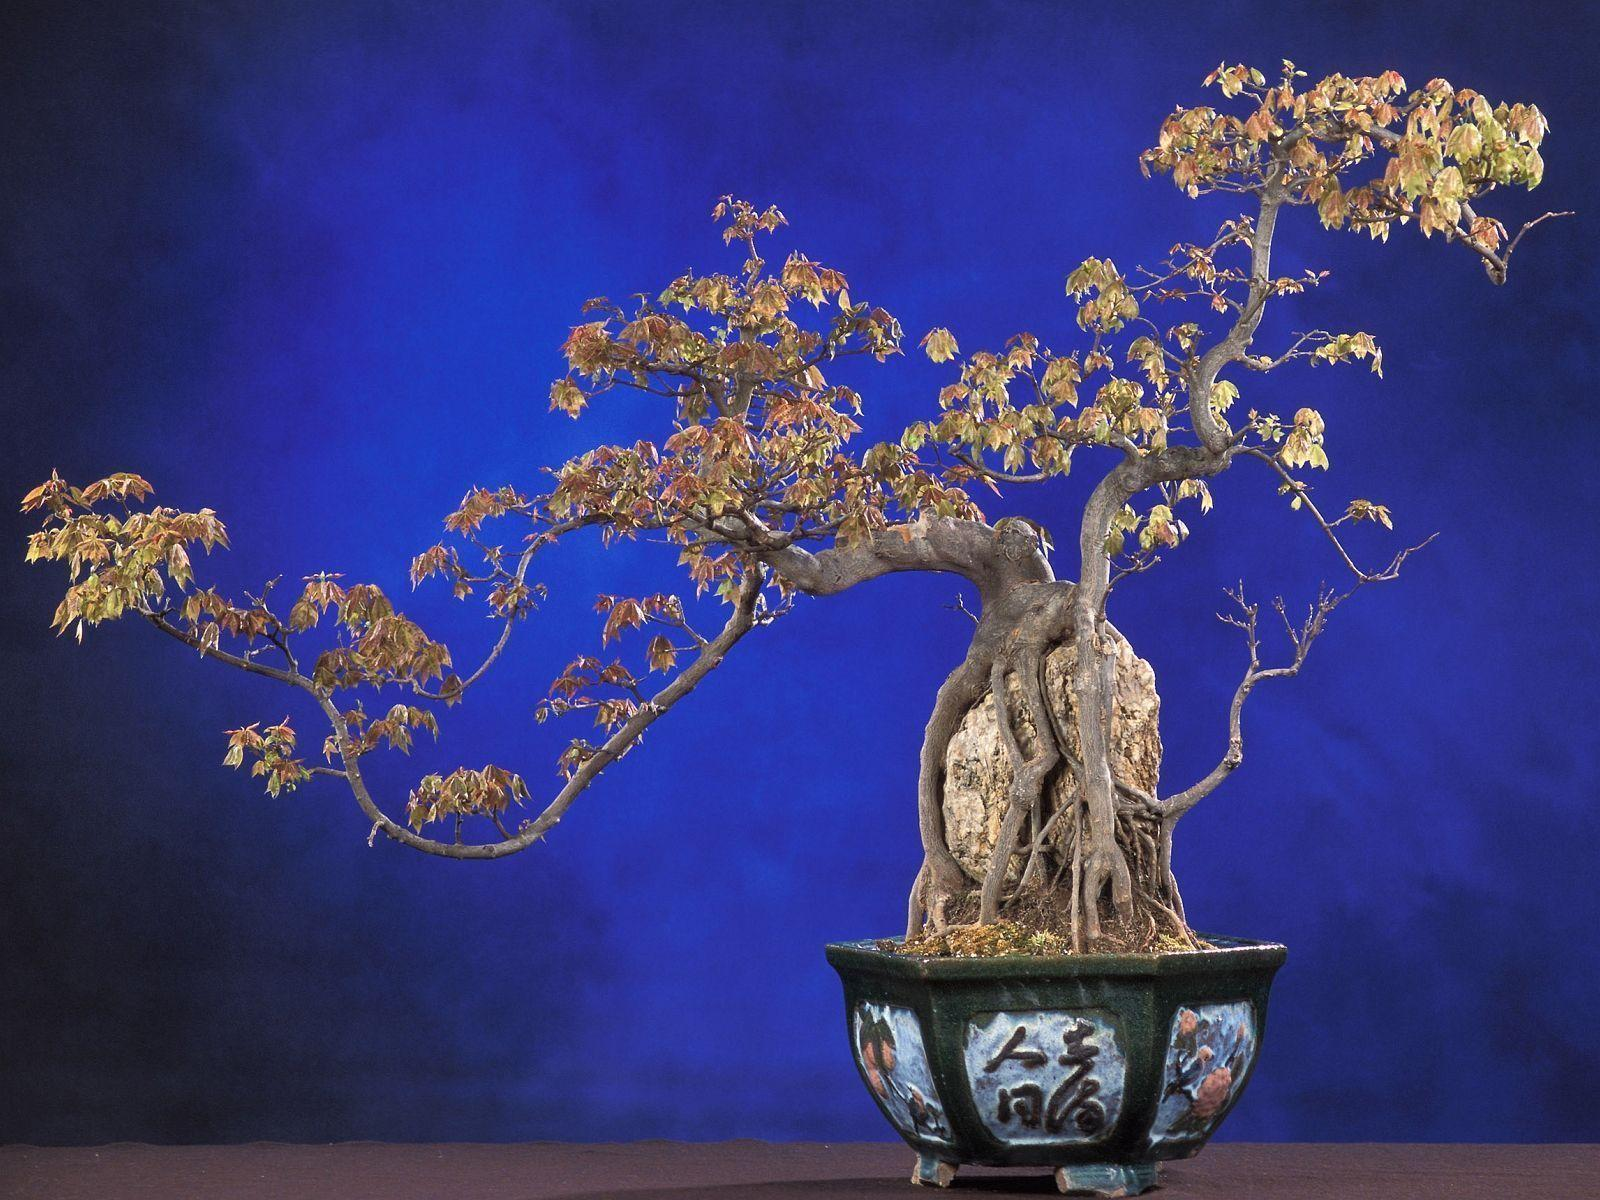 Download Bonsai Wallpaper 1600x1200 | Wallpoper #362171